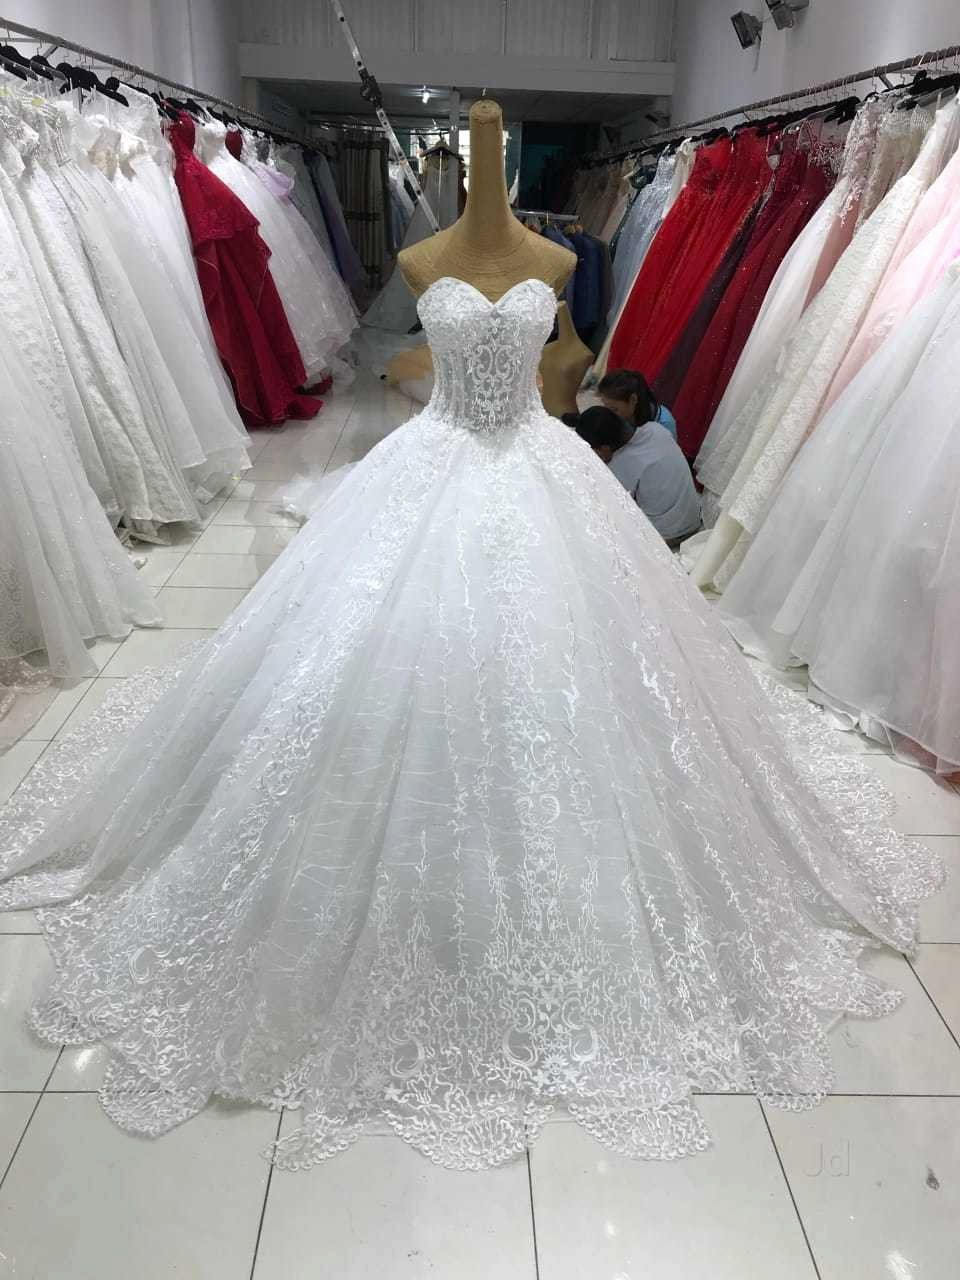 How Much Does It Cost To Dry Clean Wedding Dress Awesome Beautiful Bride Andheri East Wedding Gowns Hire In In 2020 Bridal Gowns Online Bridal Gowns Ball Gowns Wedding